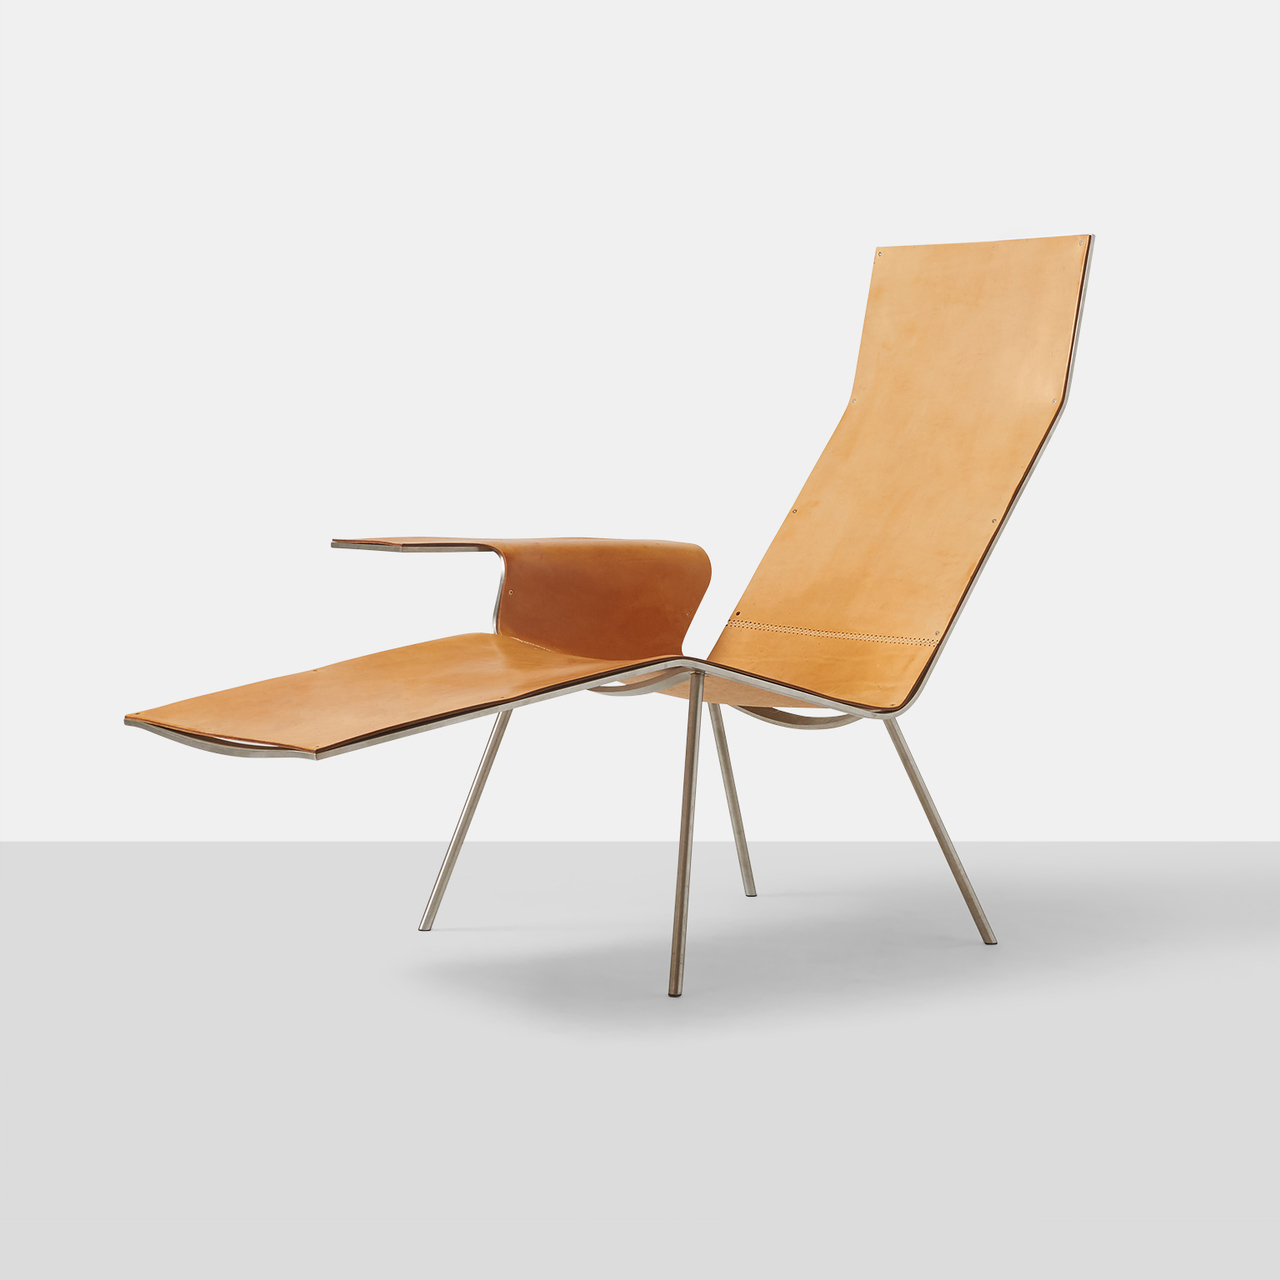 Chaise Longue LL04 by Maarten van Severen - Almond and Company on chaise furniture, chaise sofa sleeper, chaise recliner chair,